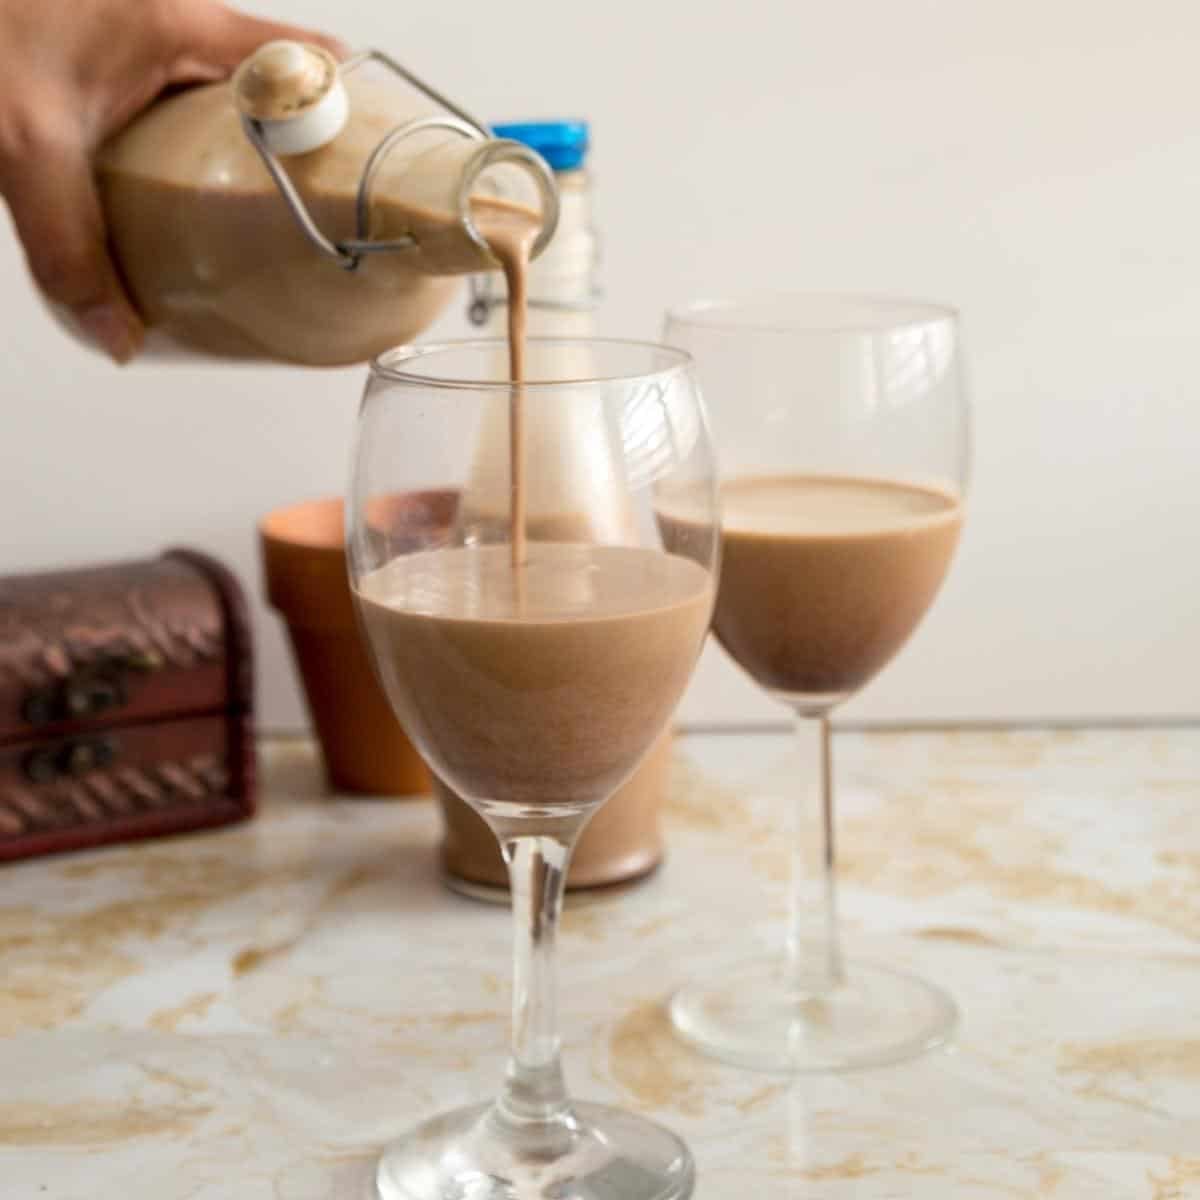 a bottle pouring baileys in a glass